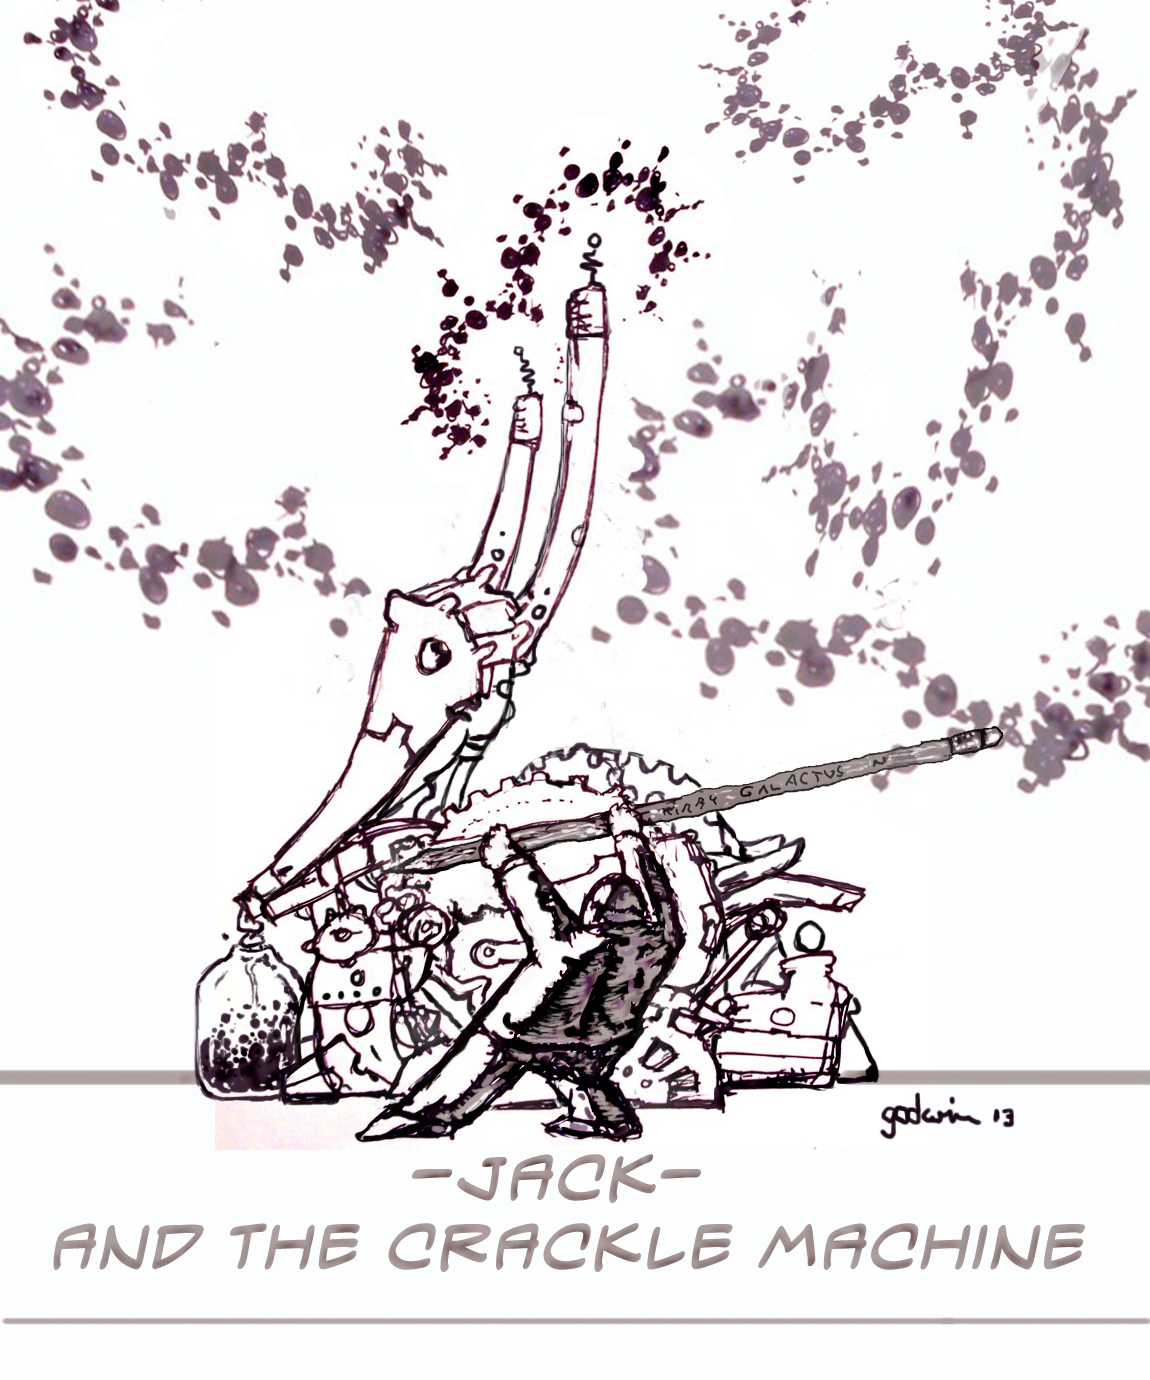 Jack and thecrackle machine